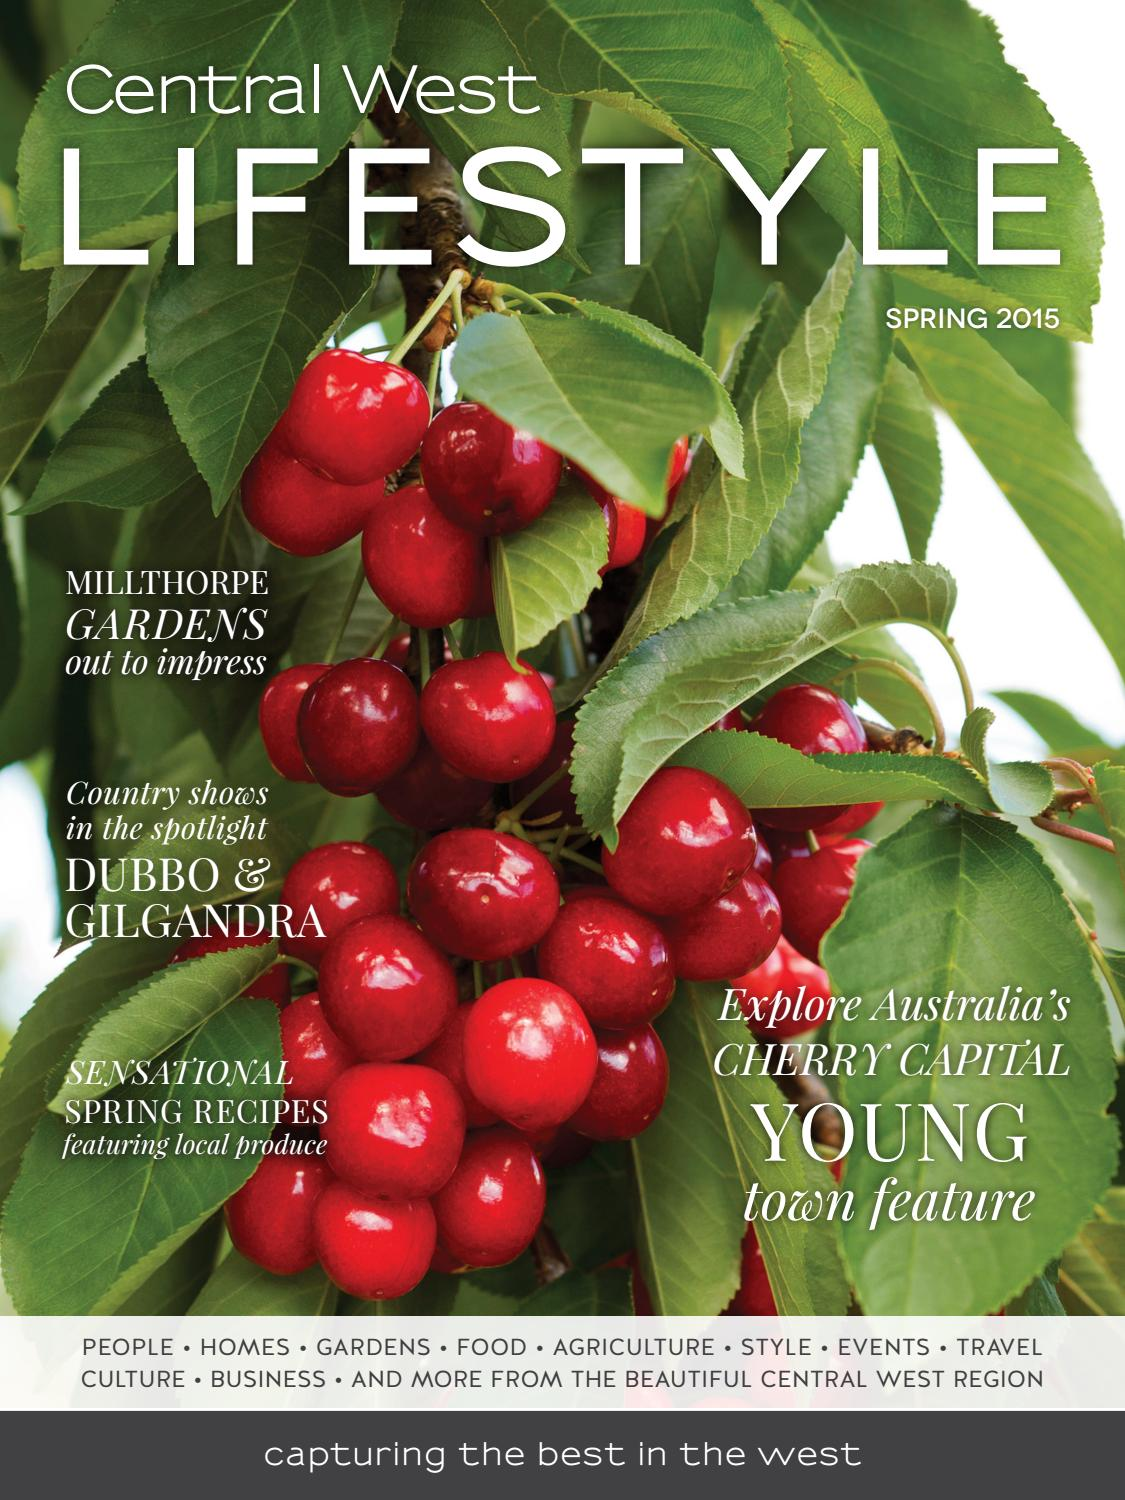 10 Central West Lifestyle Spring 2015 By Central West